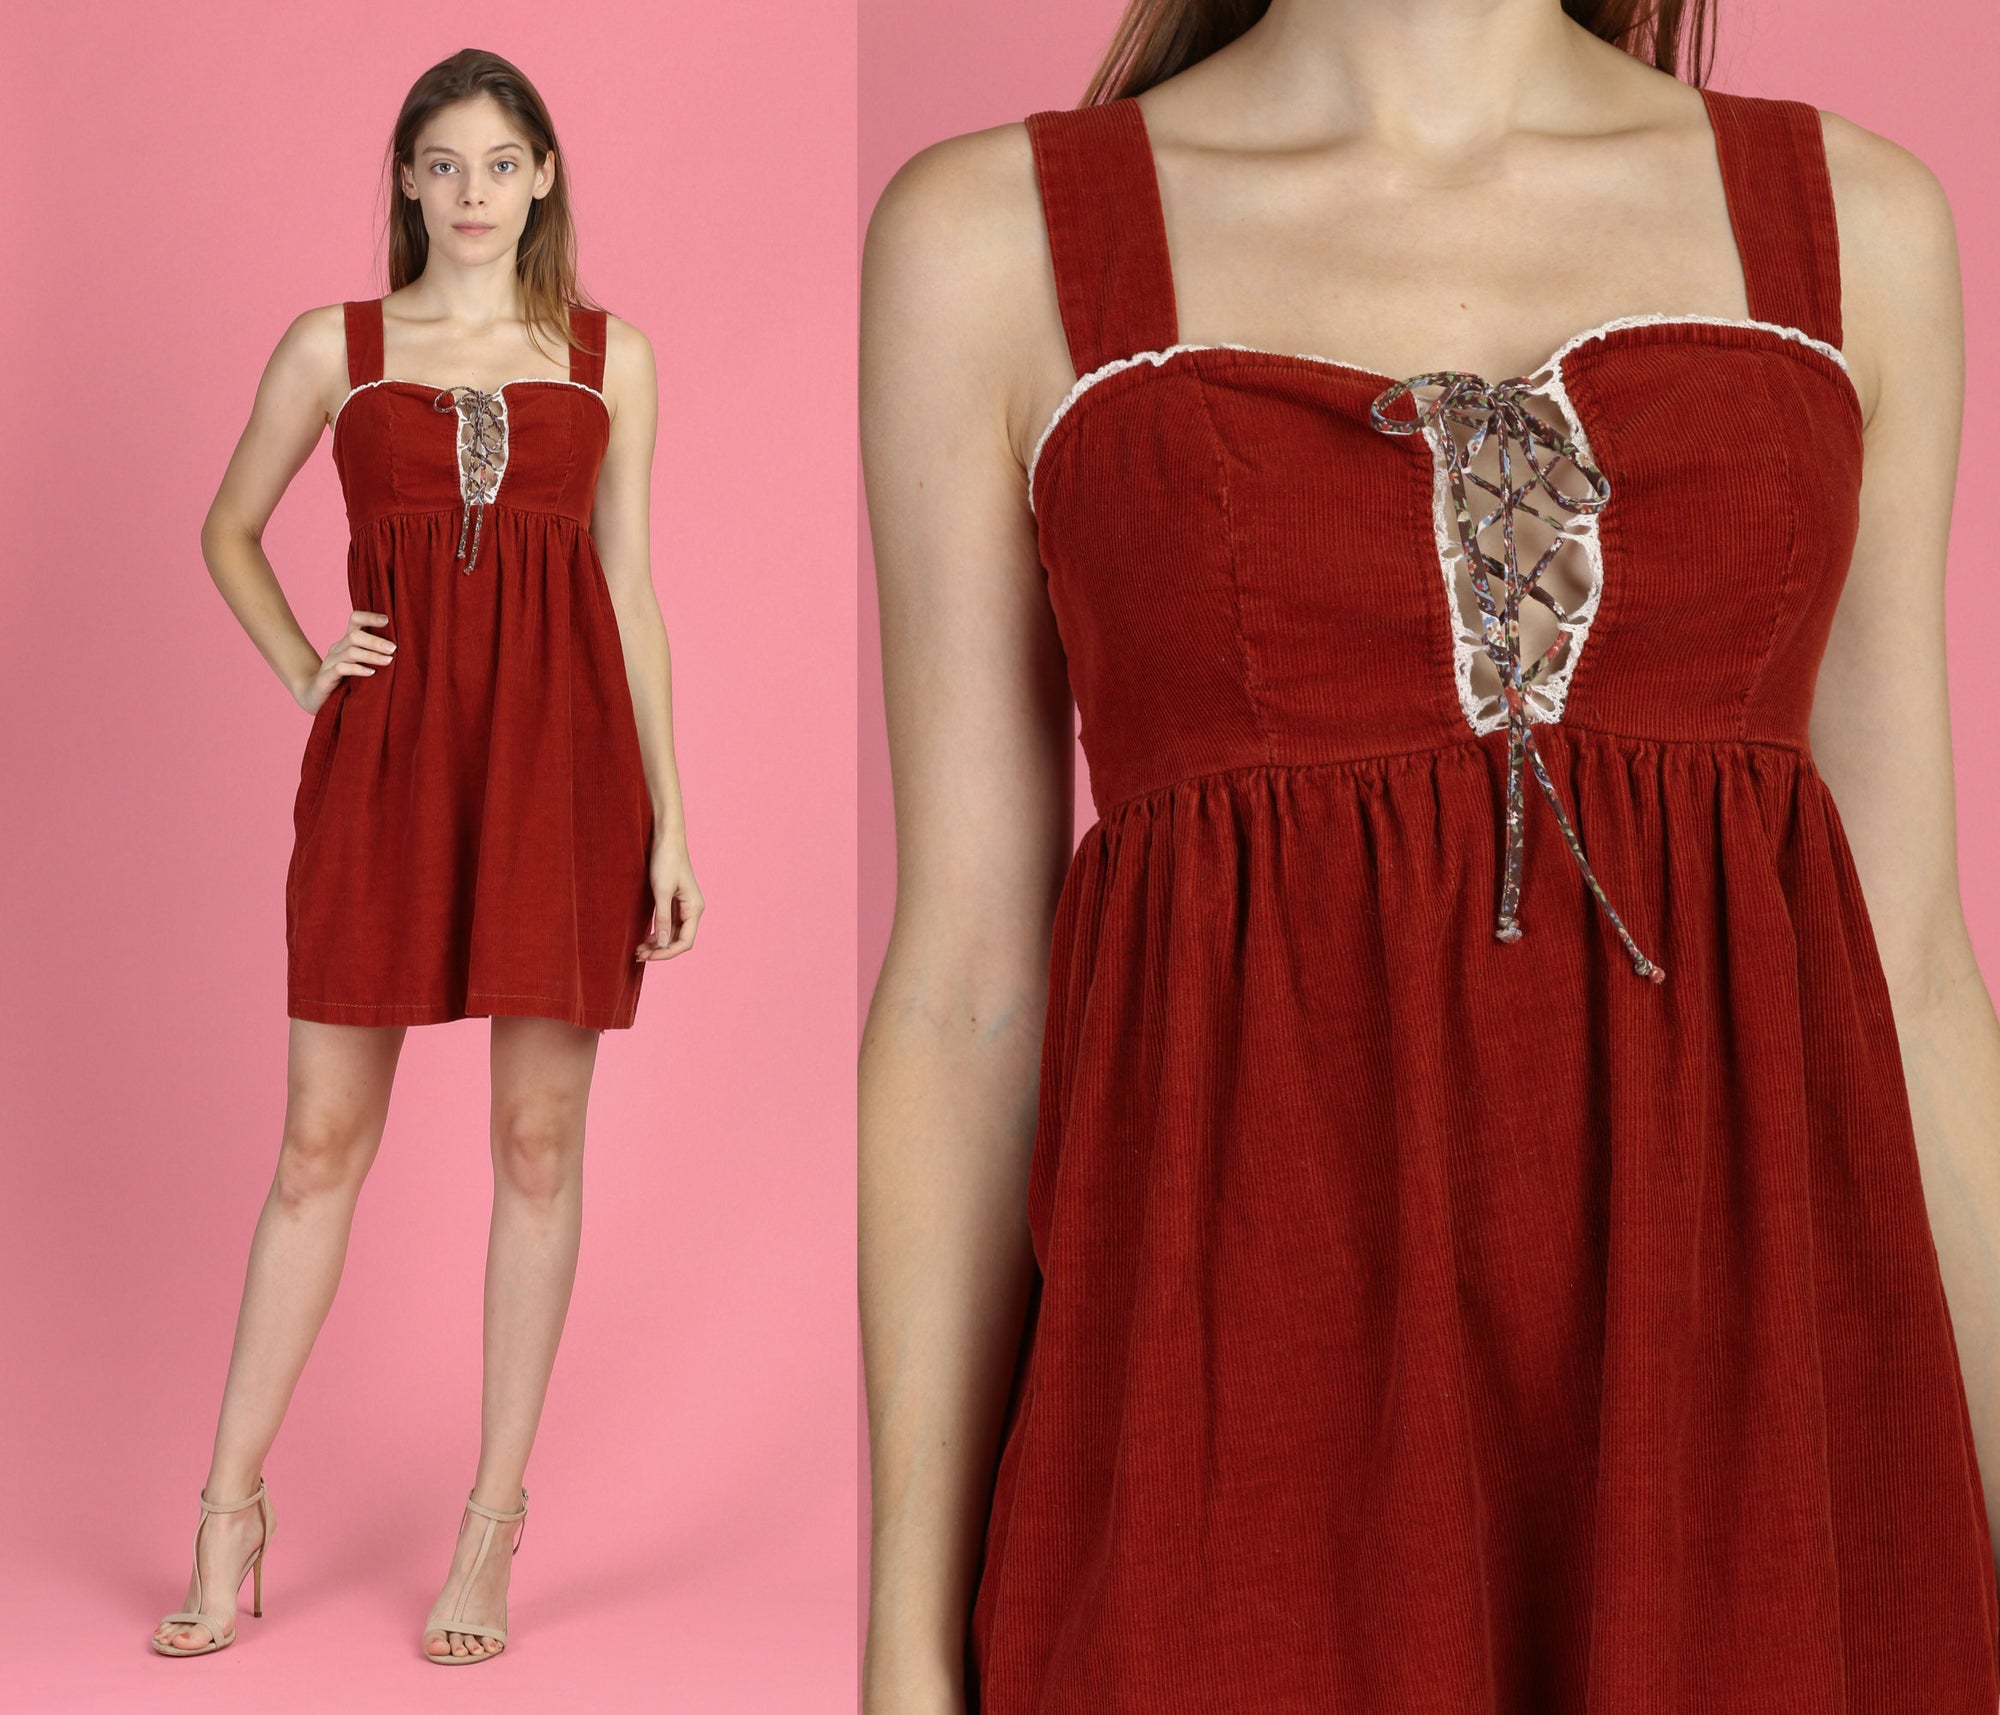 70s Boho Red Corduroy Mini Dress - Small